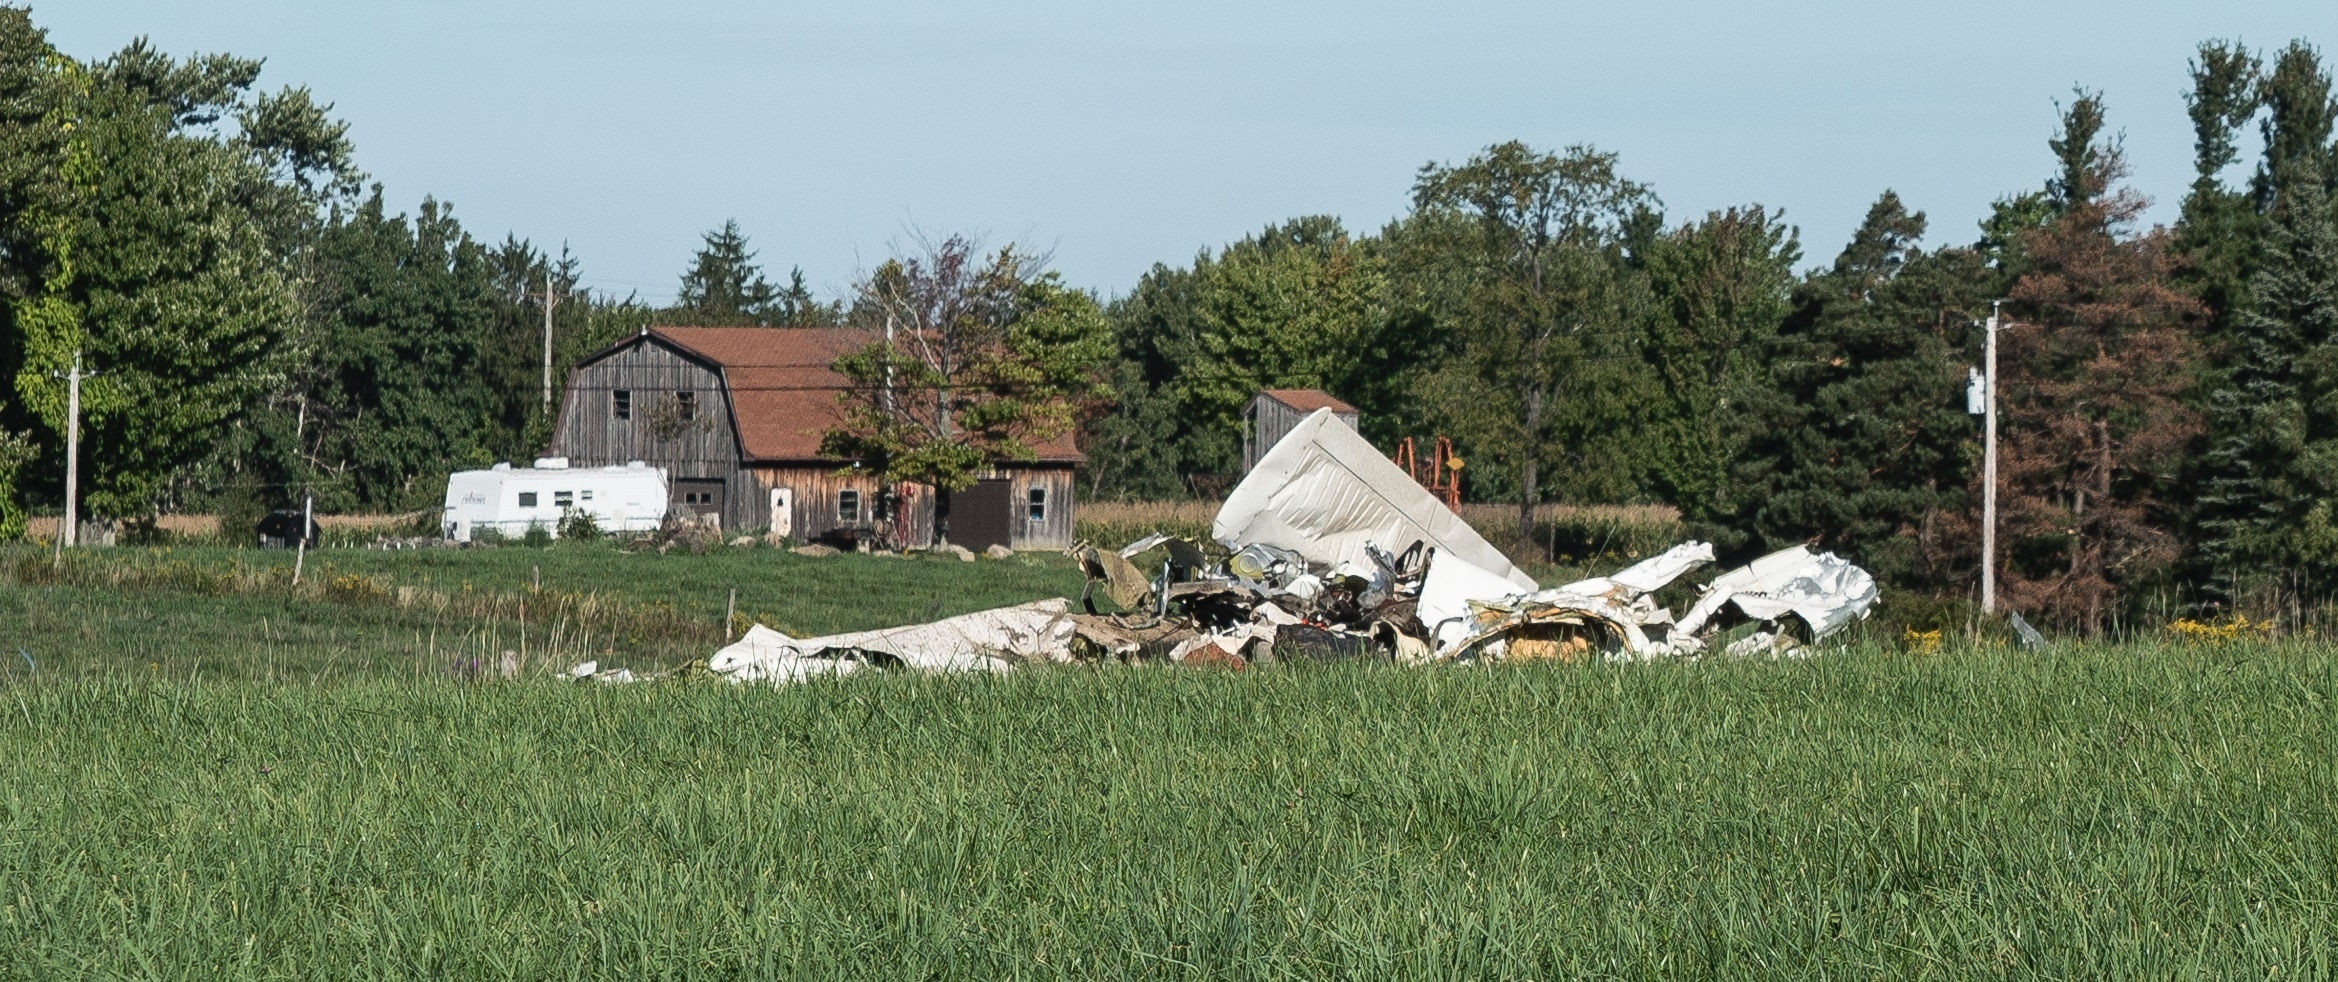 One of the planes that crashed in North Collins on Sunday morning. (Photo courtesy of Brian Schmitt)